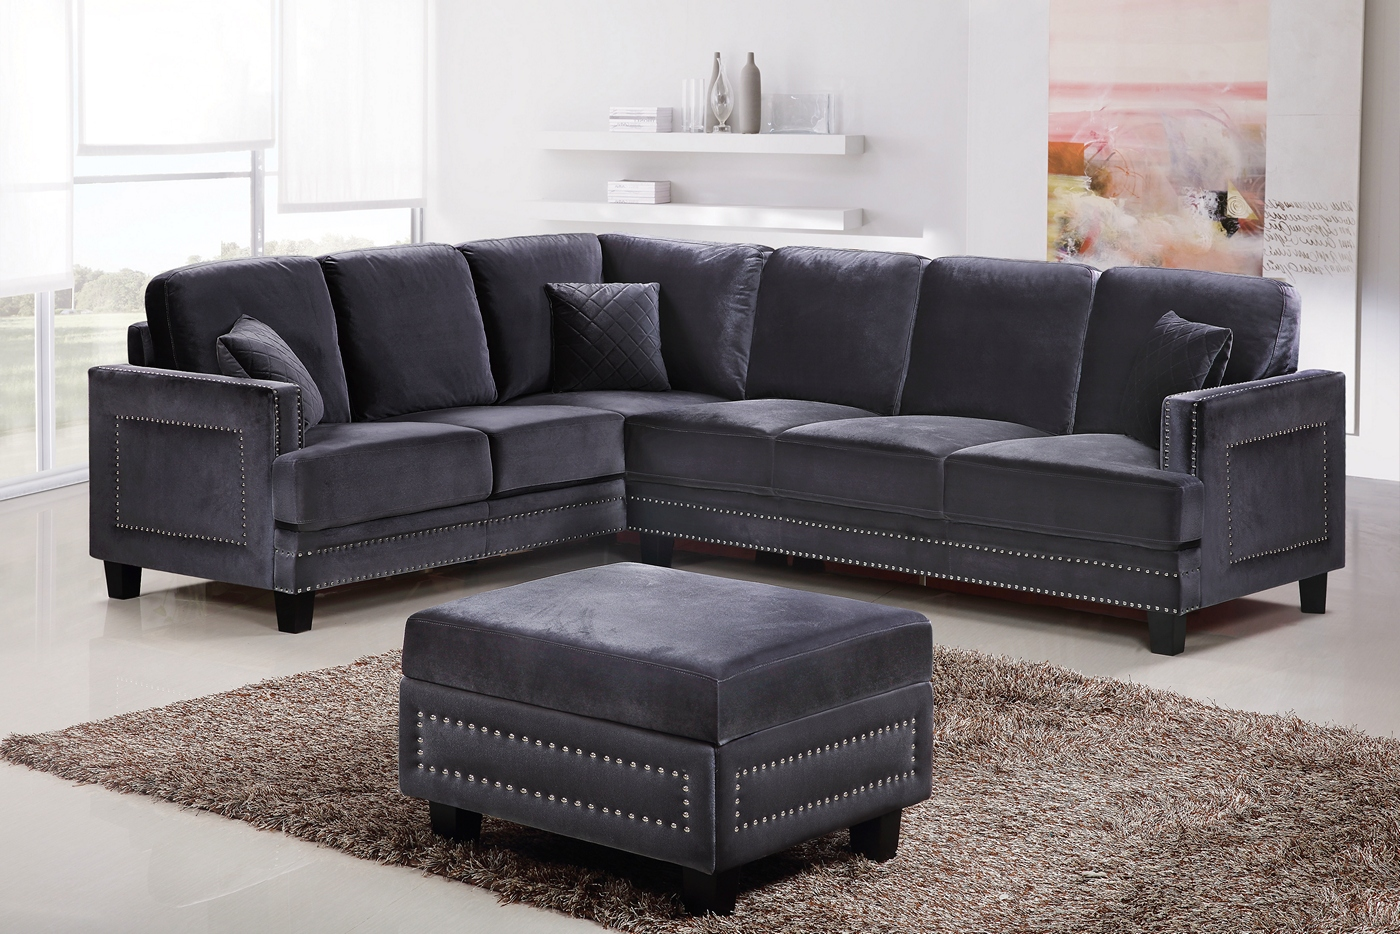 Grey Sectional Sofa With Nailhead Trim Braylee Modern Grey Velvet Sectional Sofa With Nailhead Trim